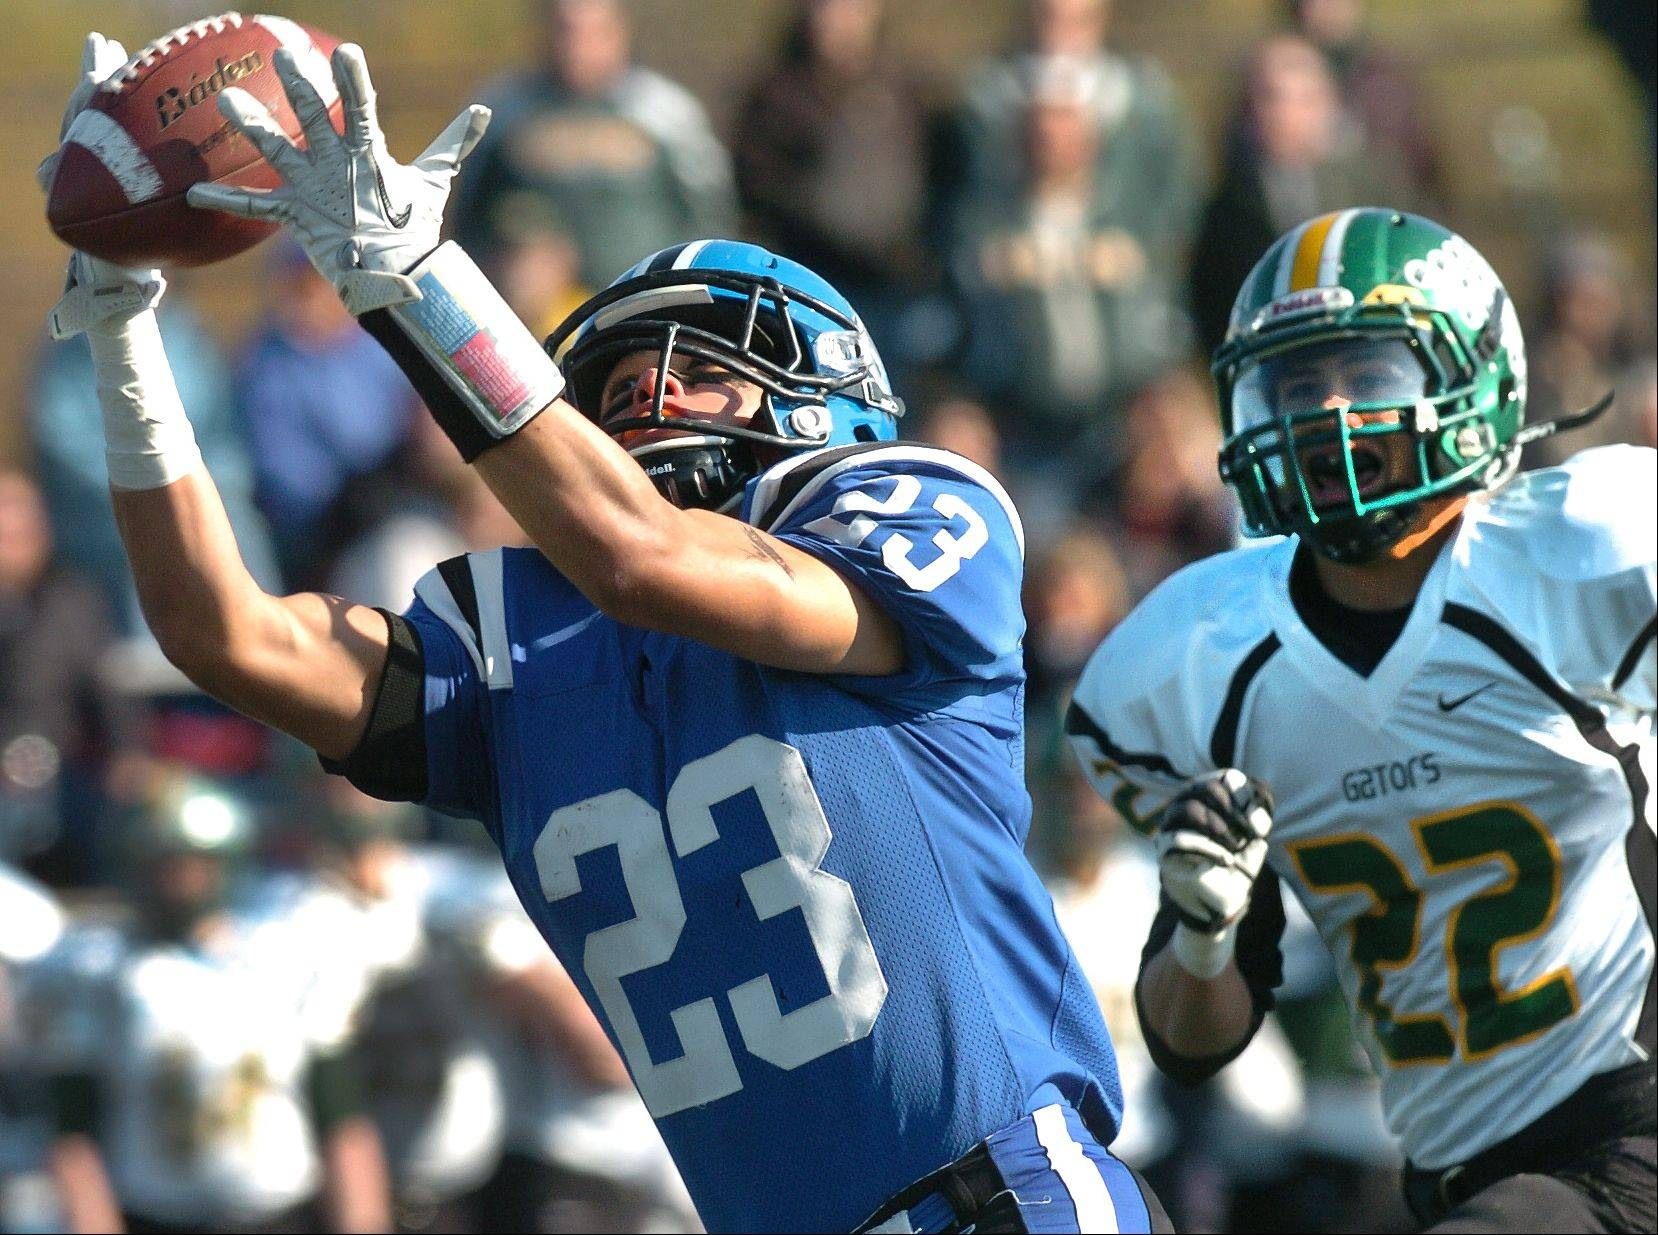 Lake Zurich's Grant Soucy hauls in a 56-yard pass during Satursday's Class 7A state playoff opener against Crystal Lake South.